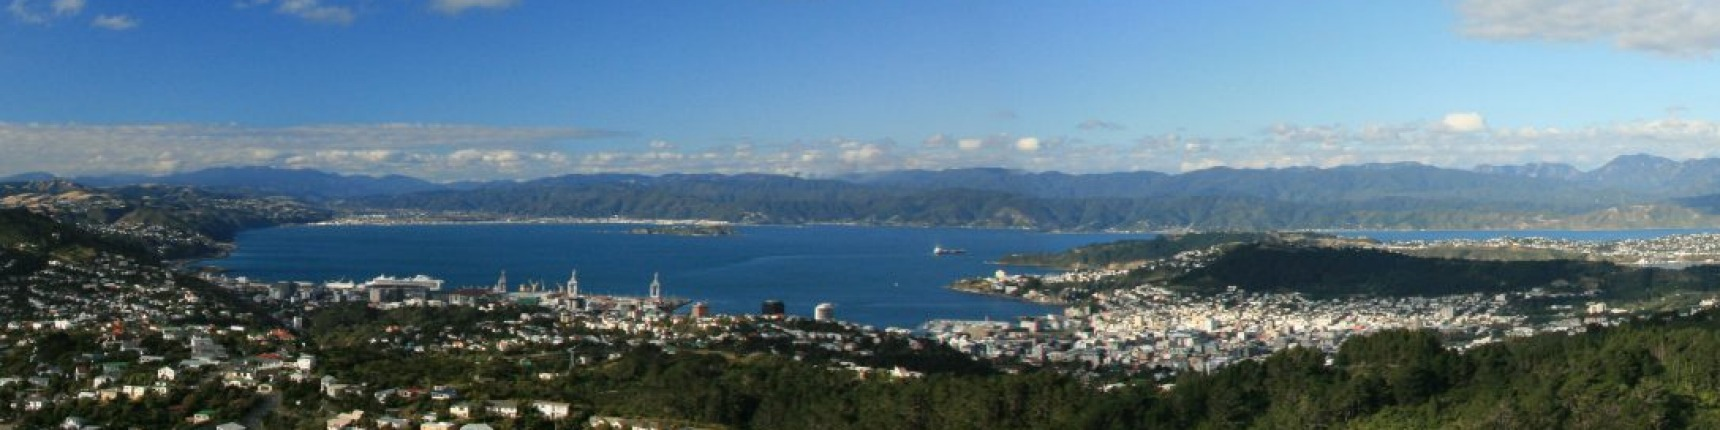 Wellington, New Zealand, aerial shot